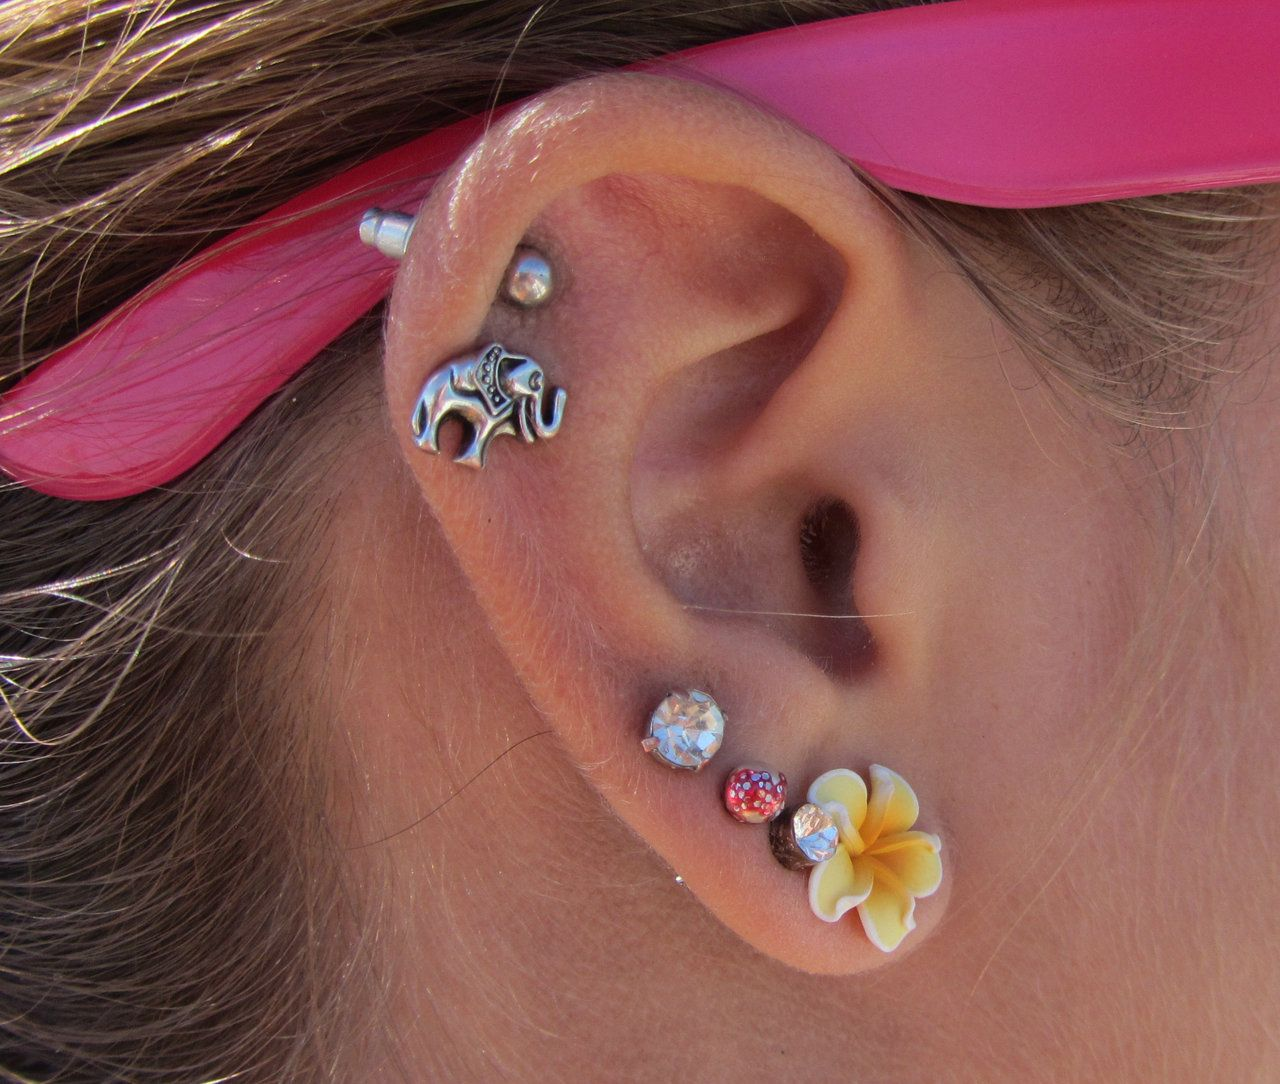 Cute Ear Piercings Tumblr Wallpaper | Fashion Trends 2015 ...